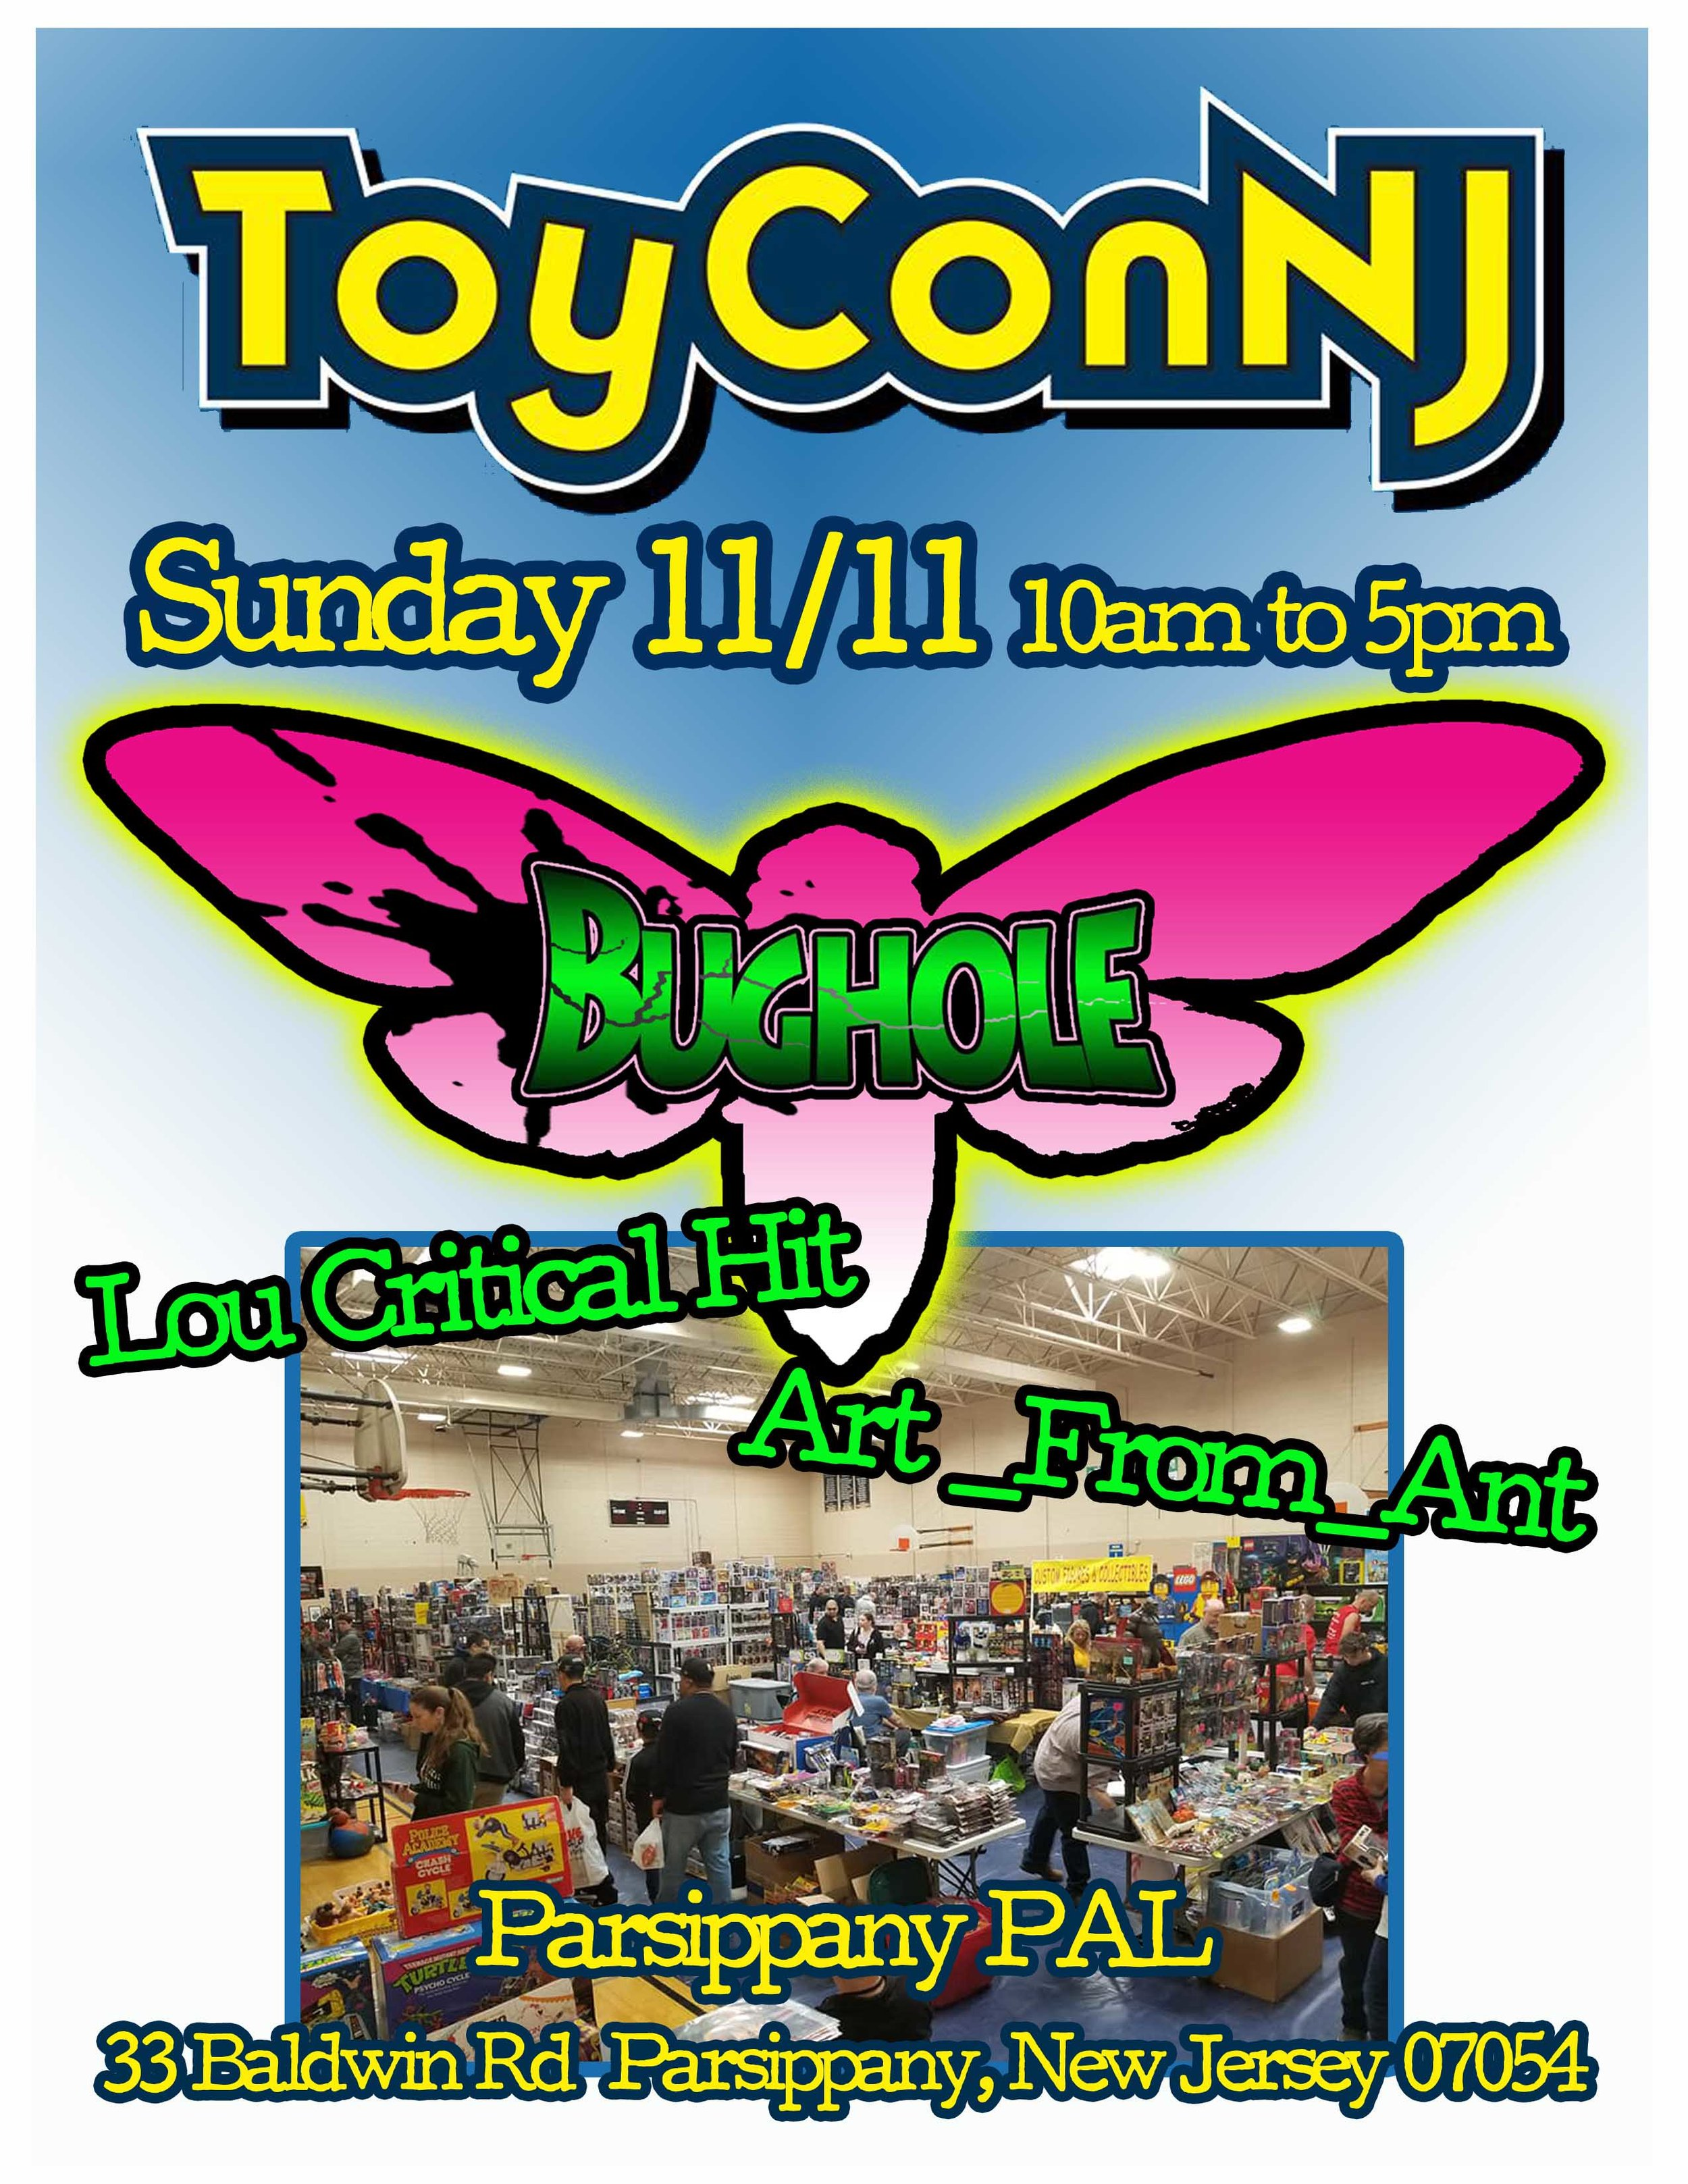 Come out and buy some original crap and some of my old crap